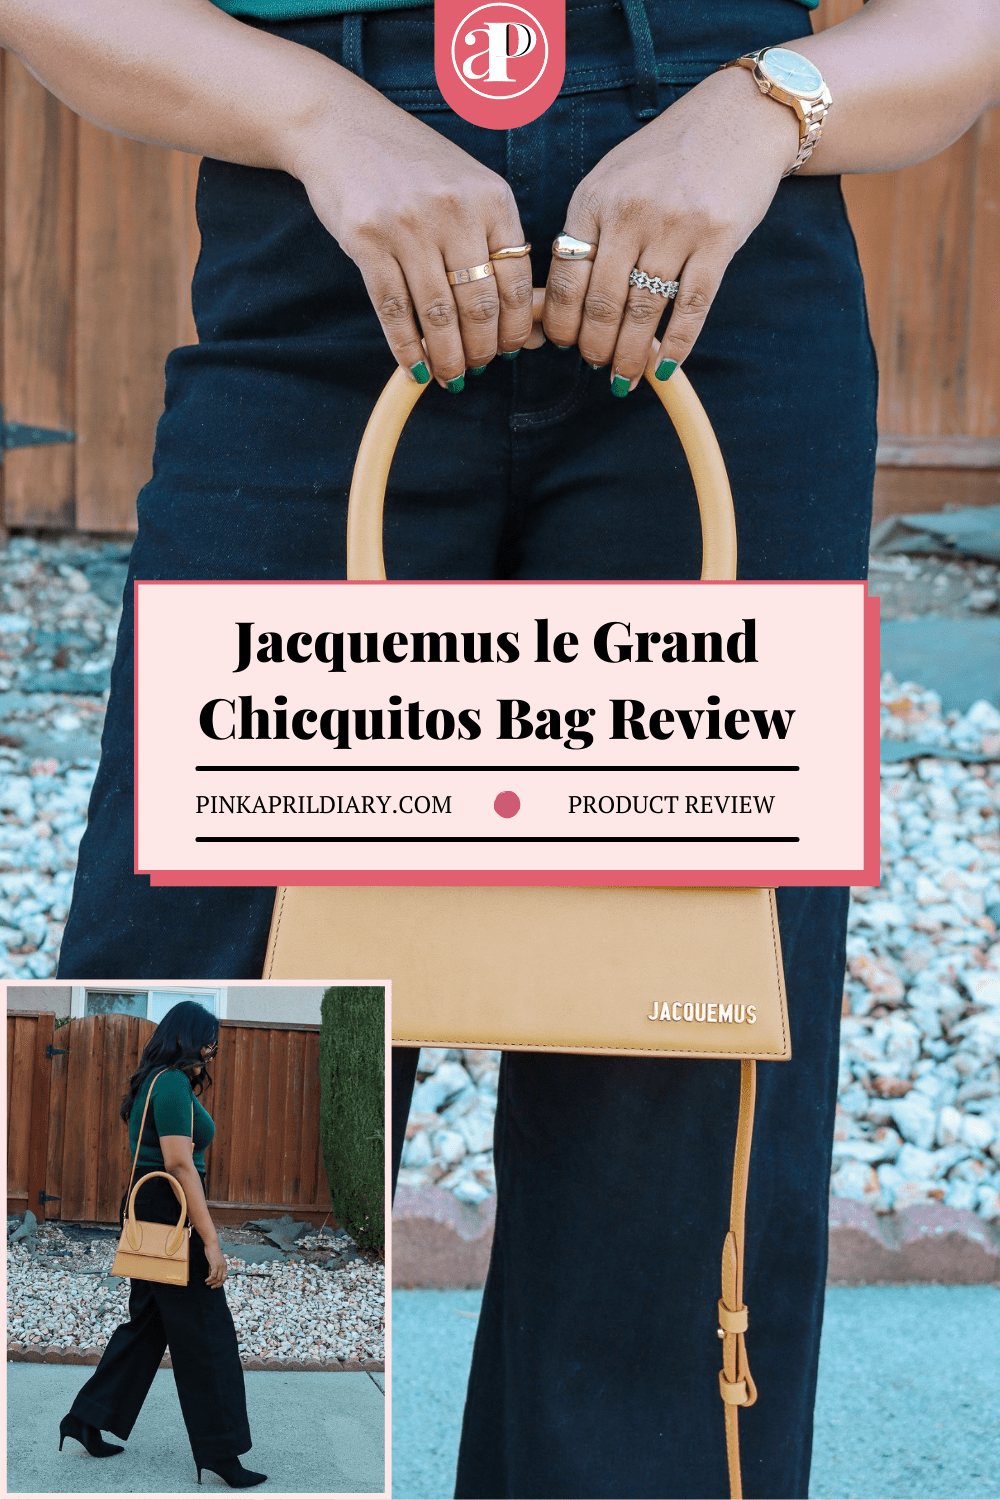 Jacquemus le Grand Chiquito Bag Review - Is it Designer Worthy